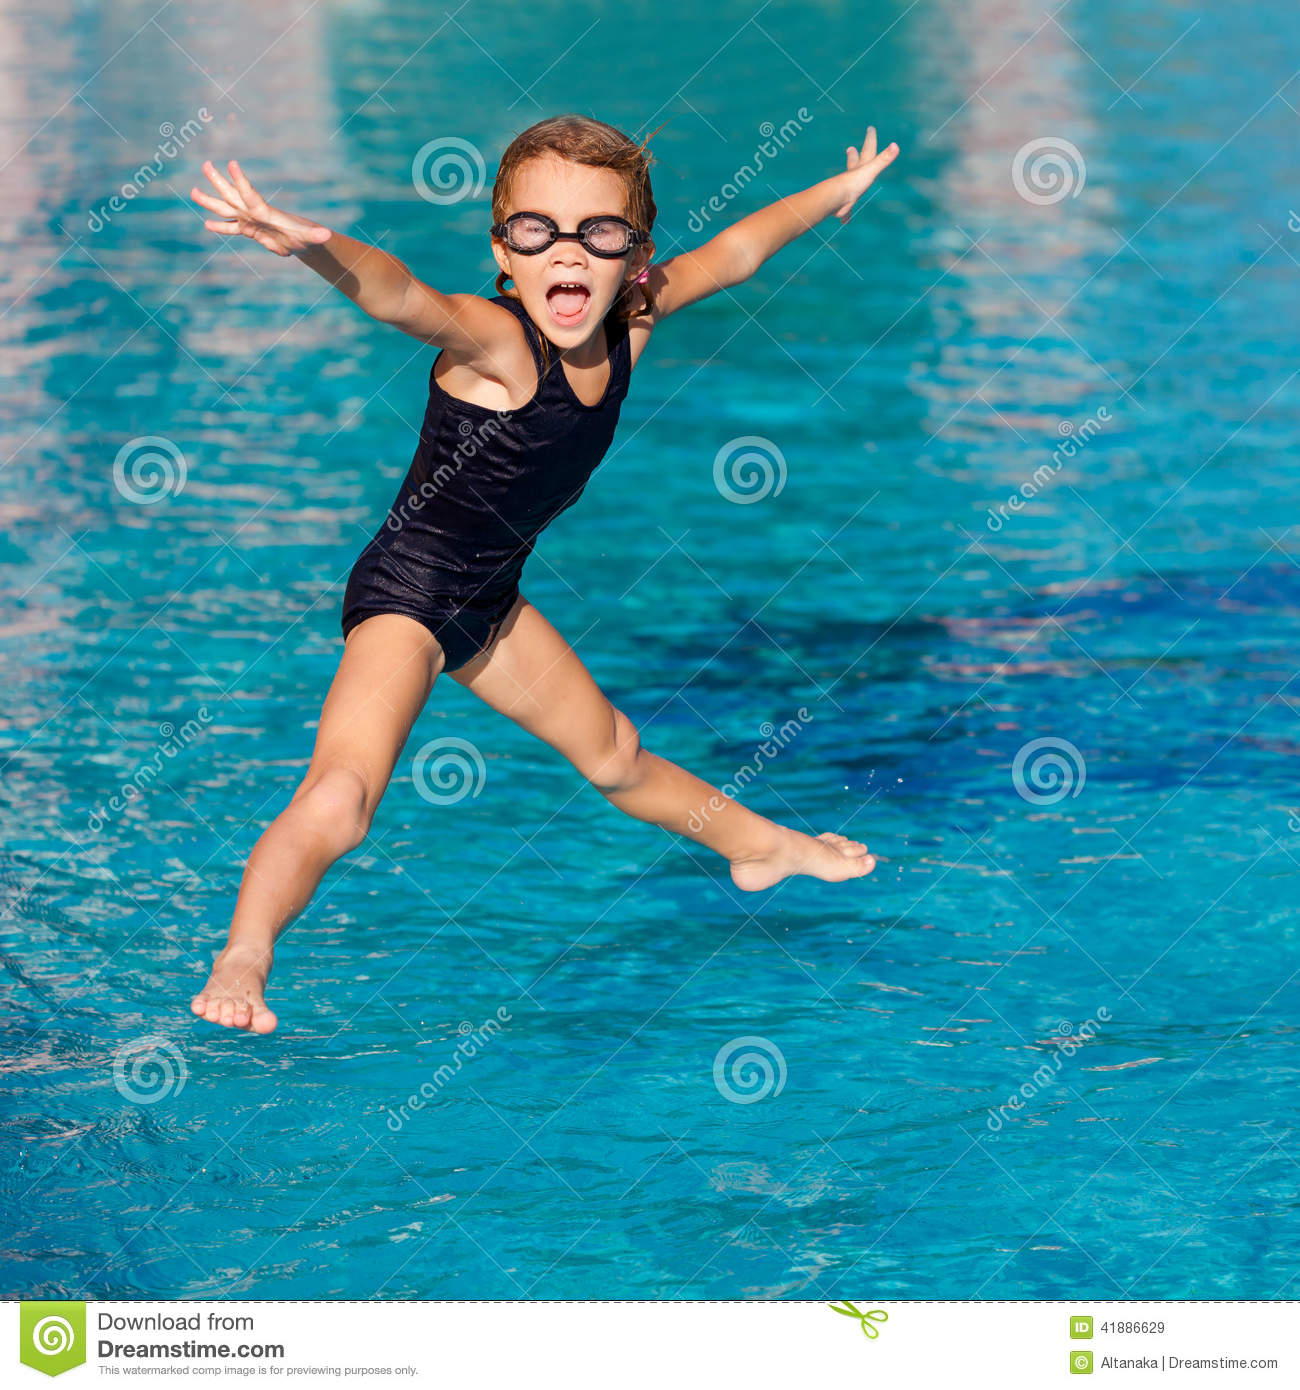 Little Girl Playing In The Swimming Pool Stock Image Image Of Beauty Exercise 41886629